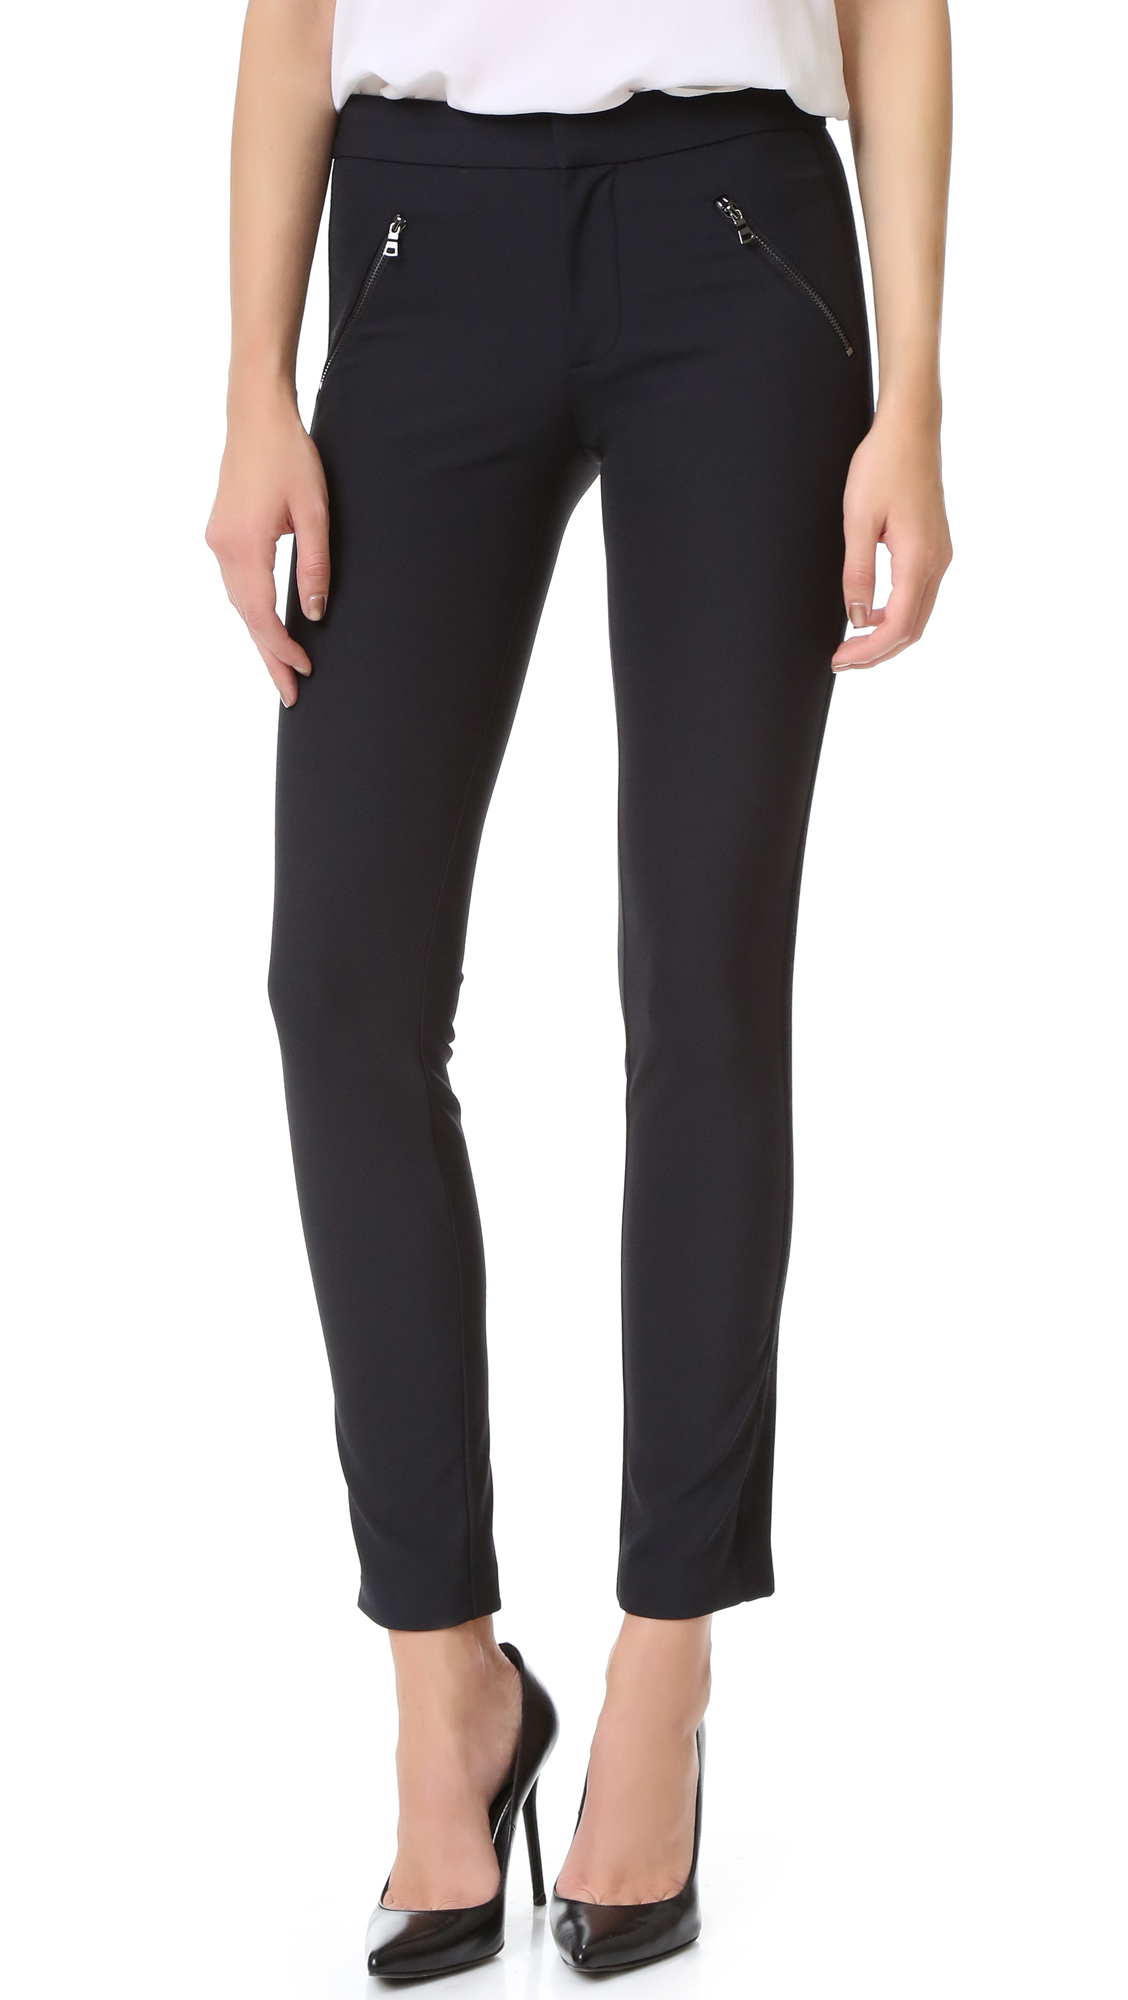 Rebecca Taylor Ava Techy Pants - Black